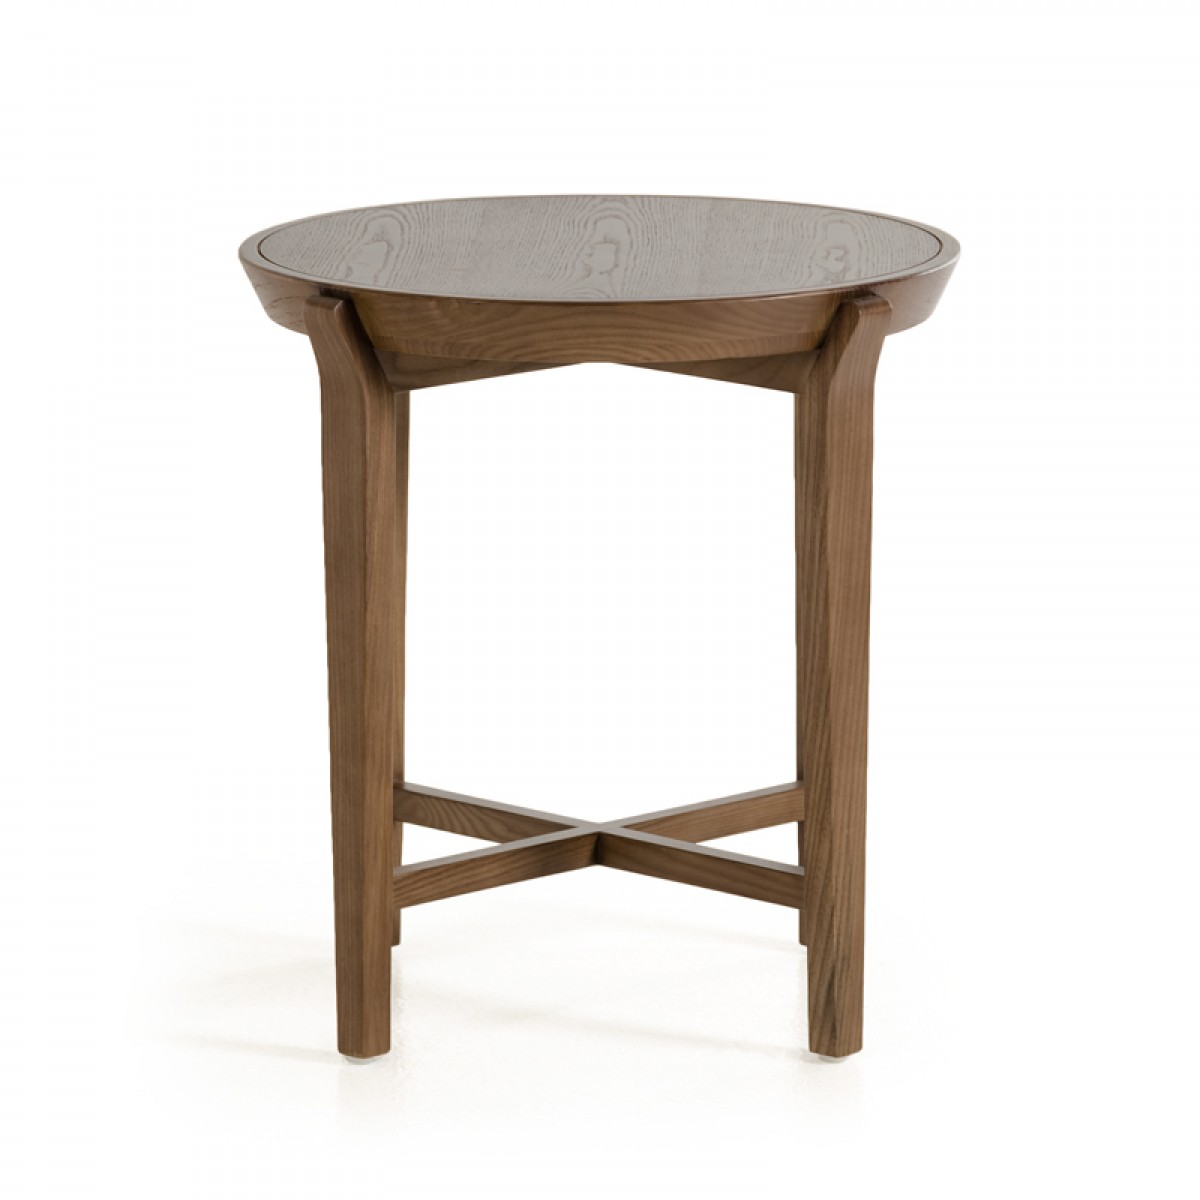 Modrest olenna modern walnut side table end tables living room for Contemporary tables for living room